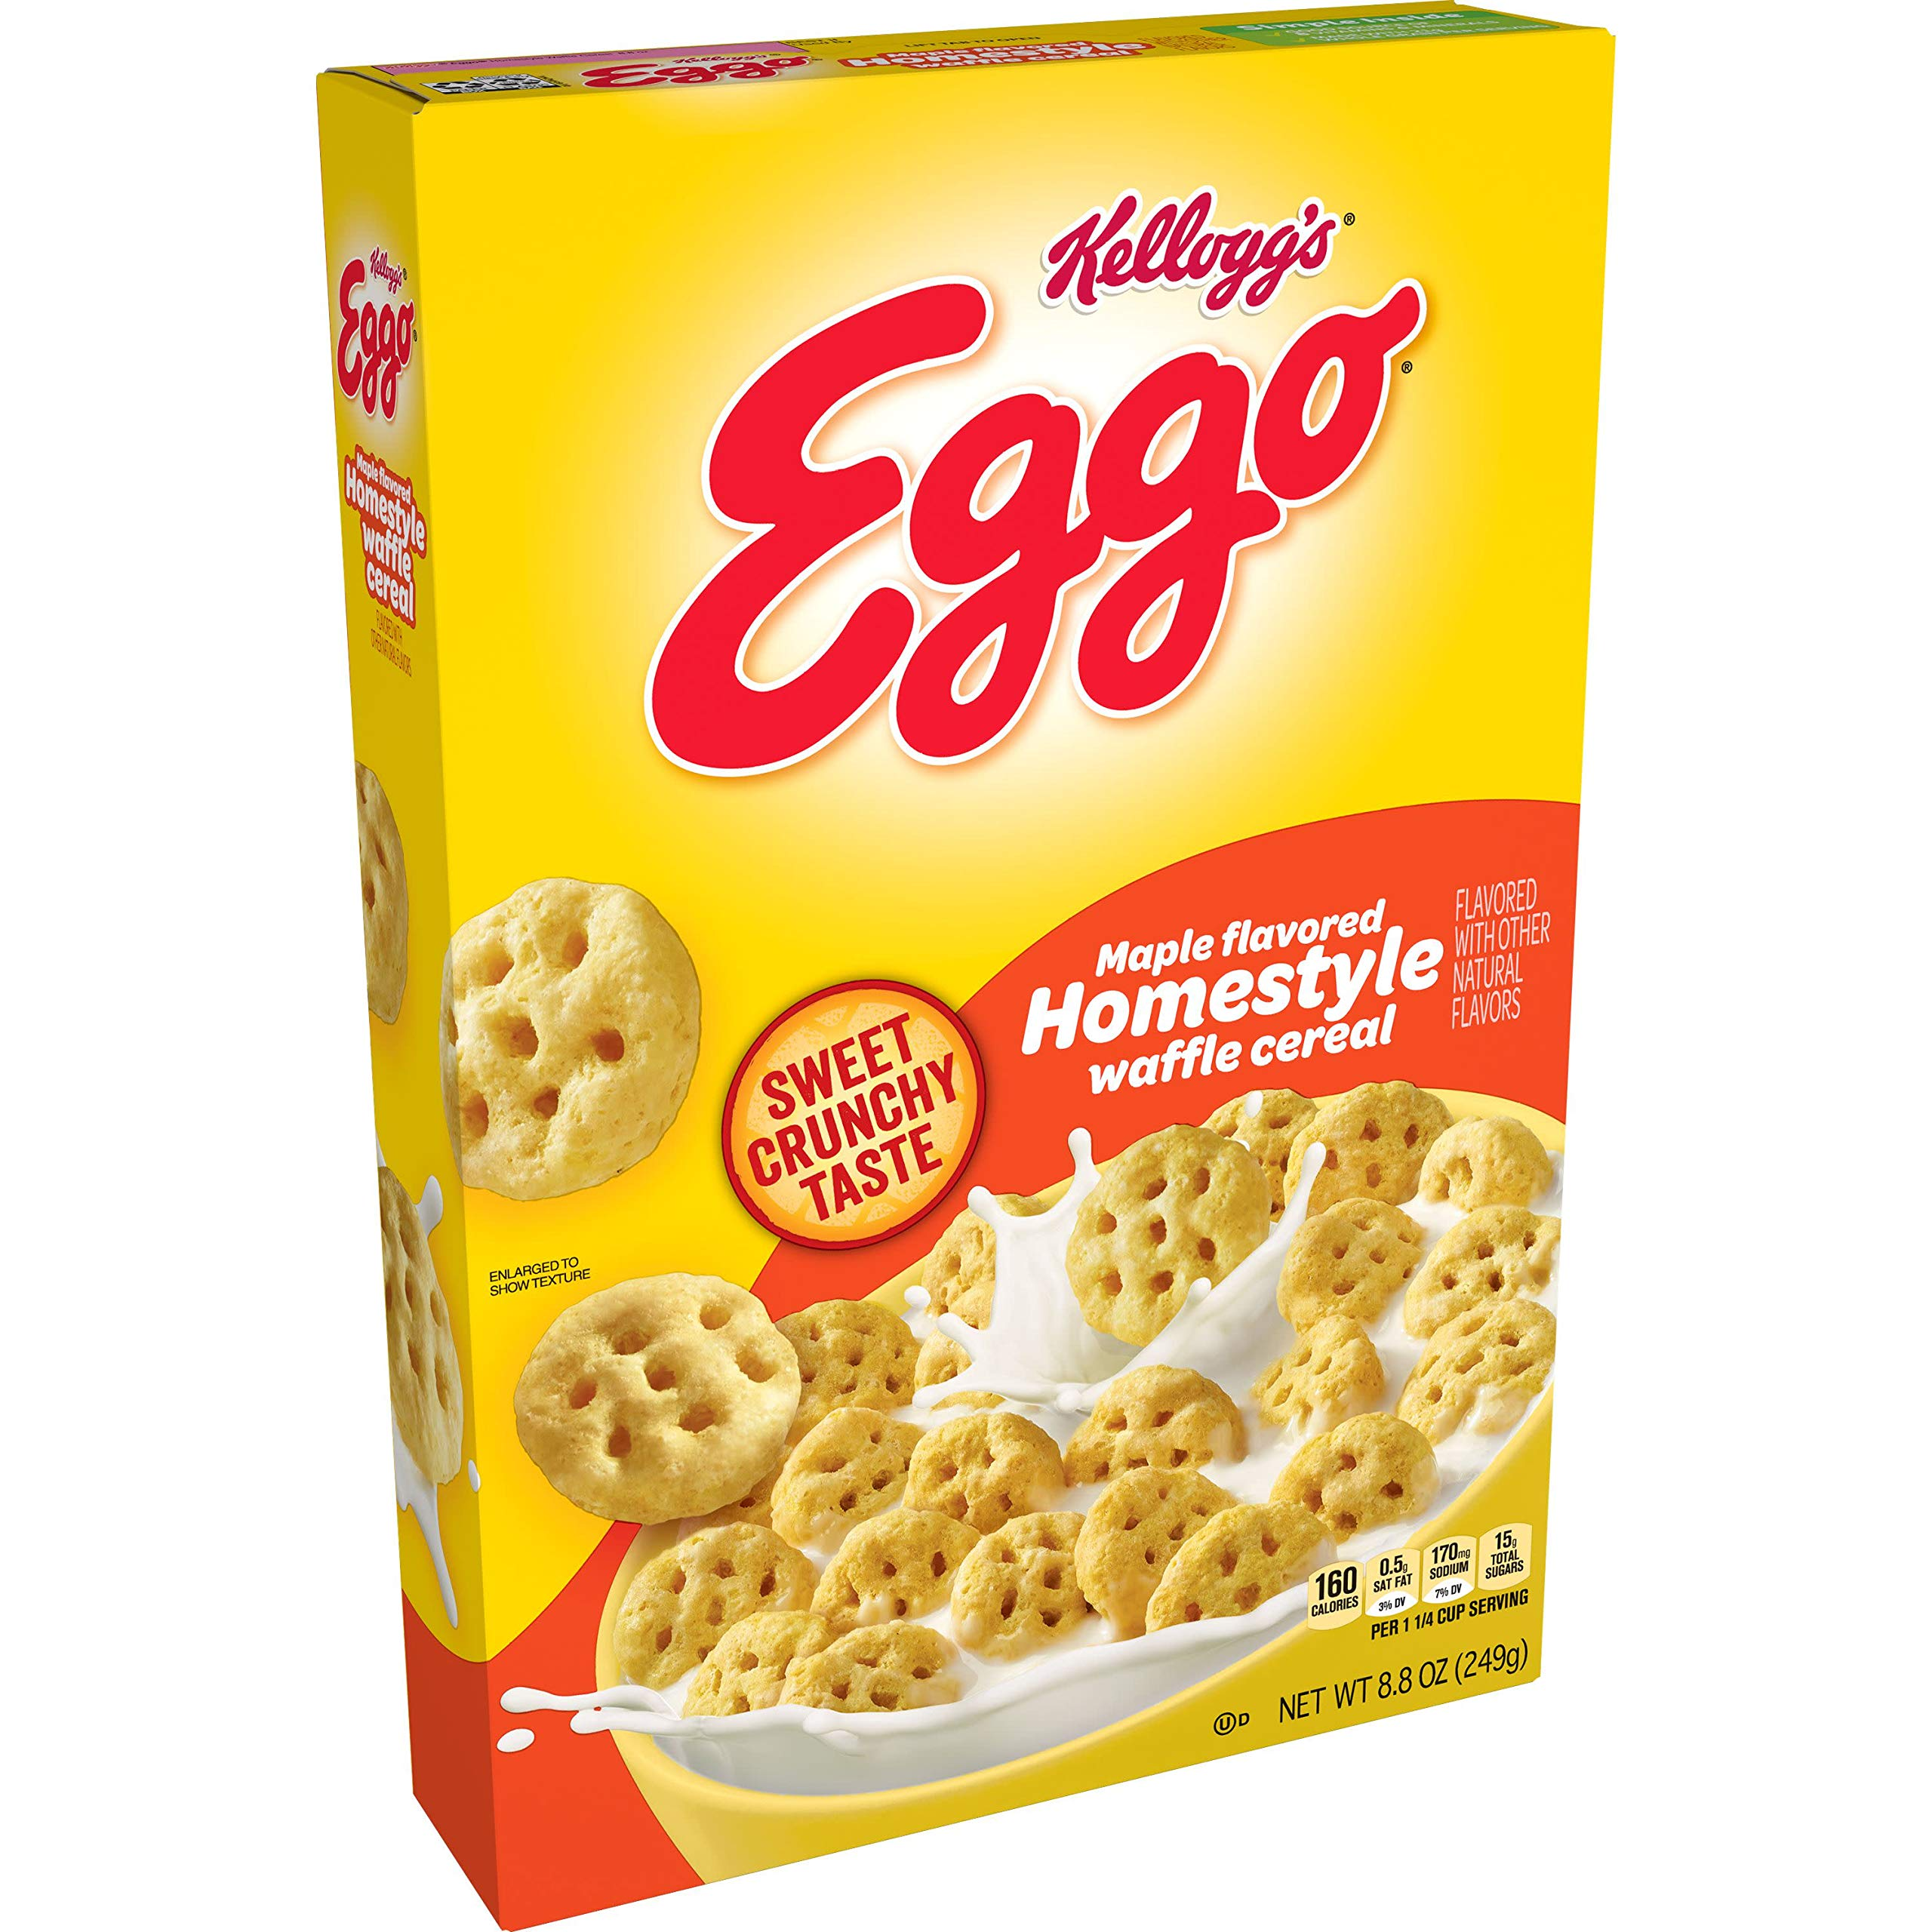 Eggo, Breakfast Cereal, Maple Flavored Homestyle Waffle, Good Source of 8 Vitamins and Minerals, 8.8oz Box